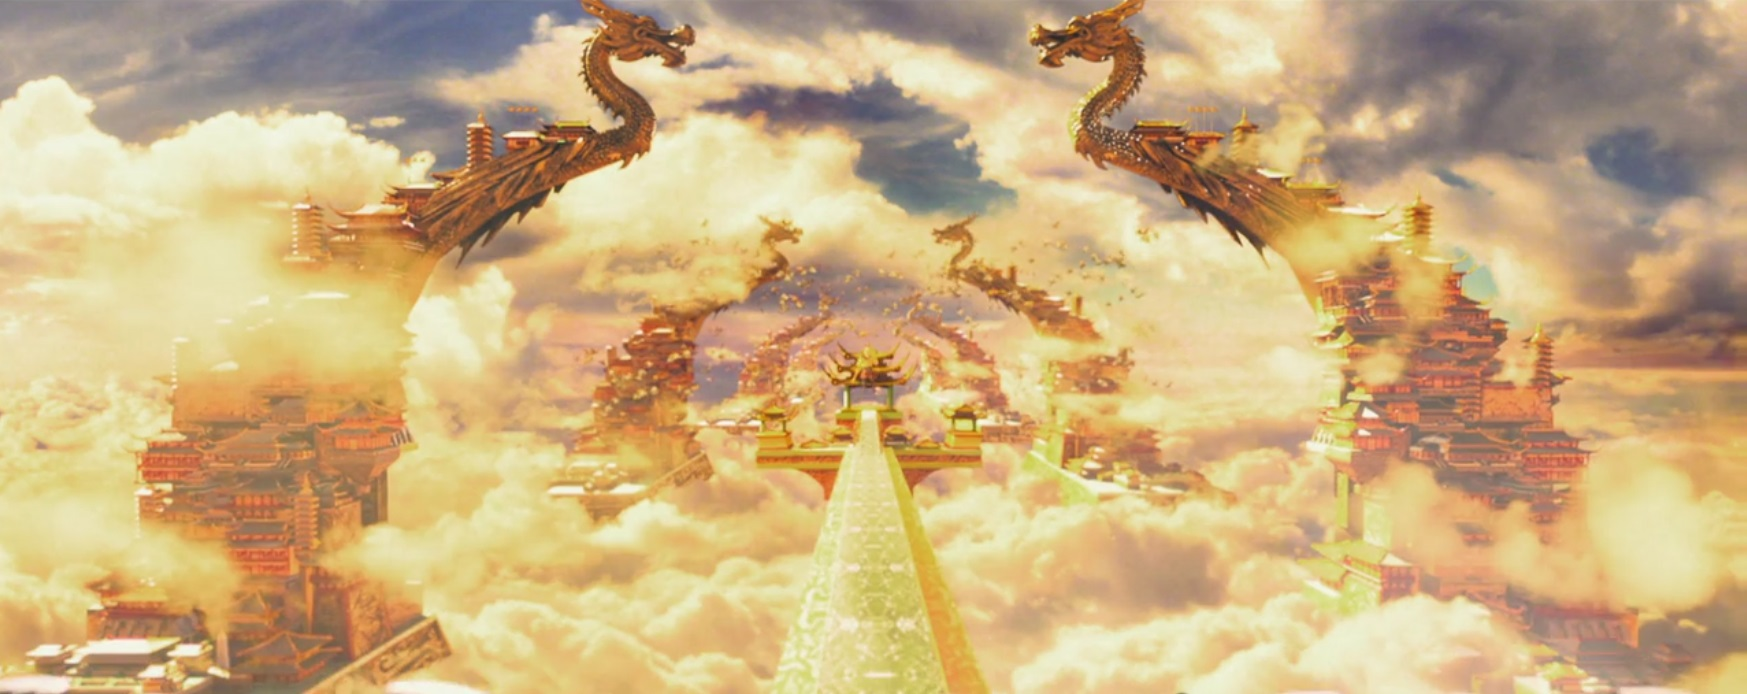 The gate to Heaven in The Monkey King (2014)